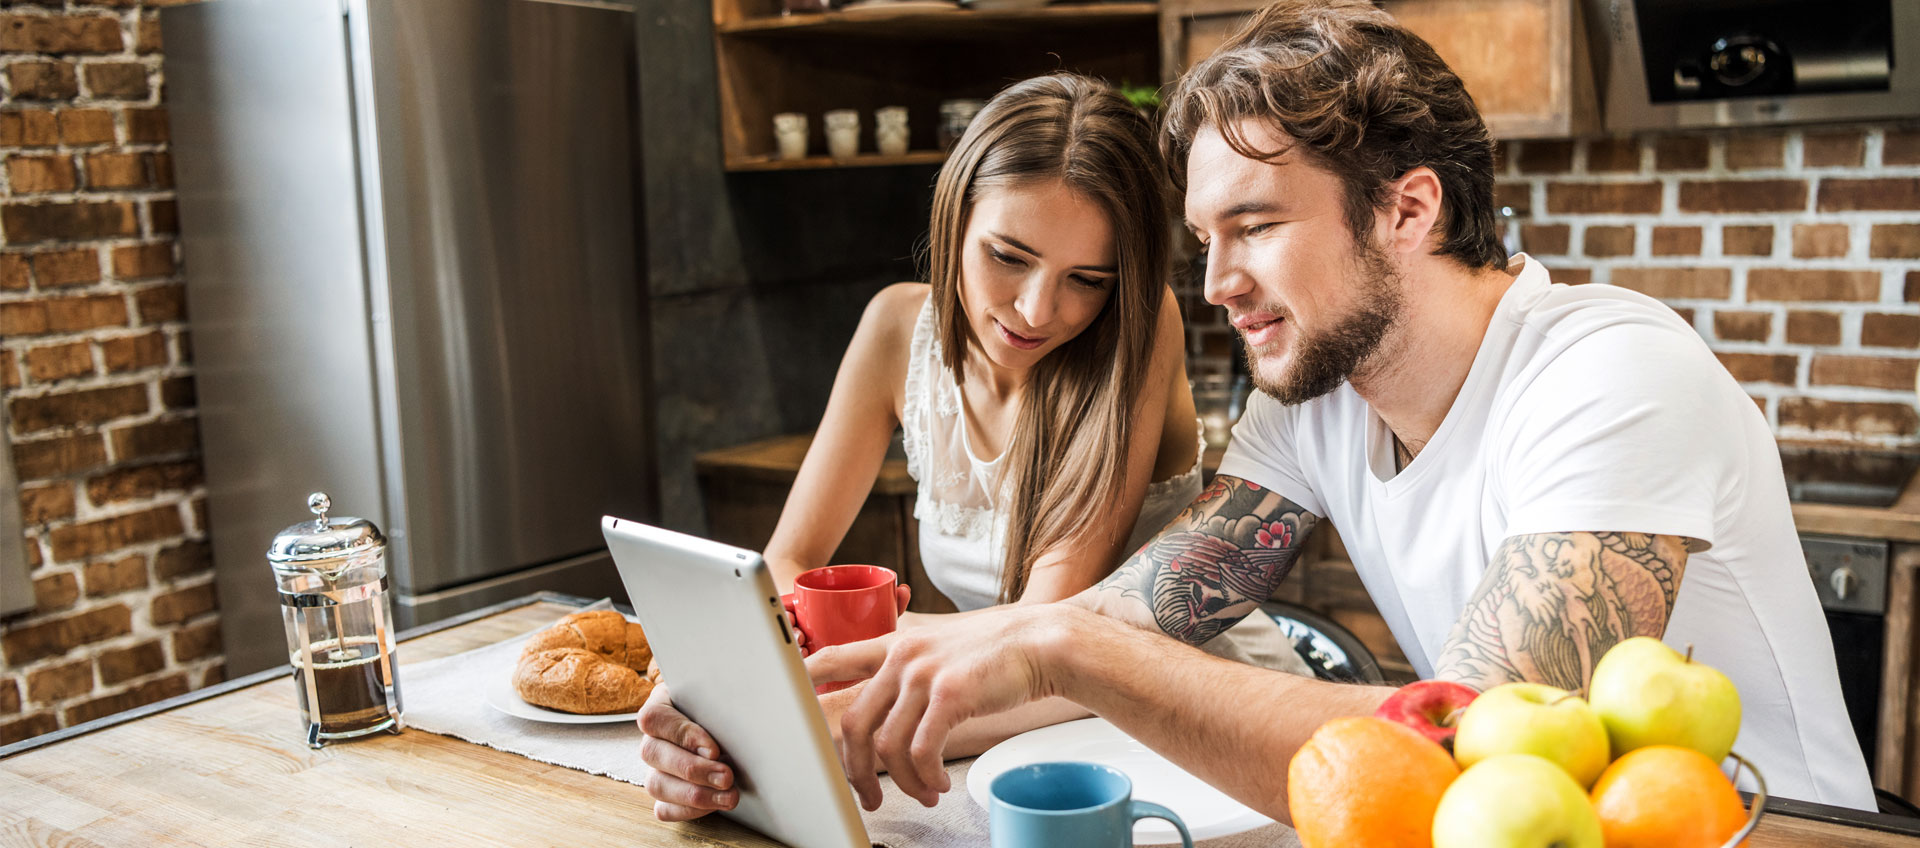 Photo of young couple looking at tablet and eating breakfast